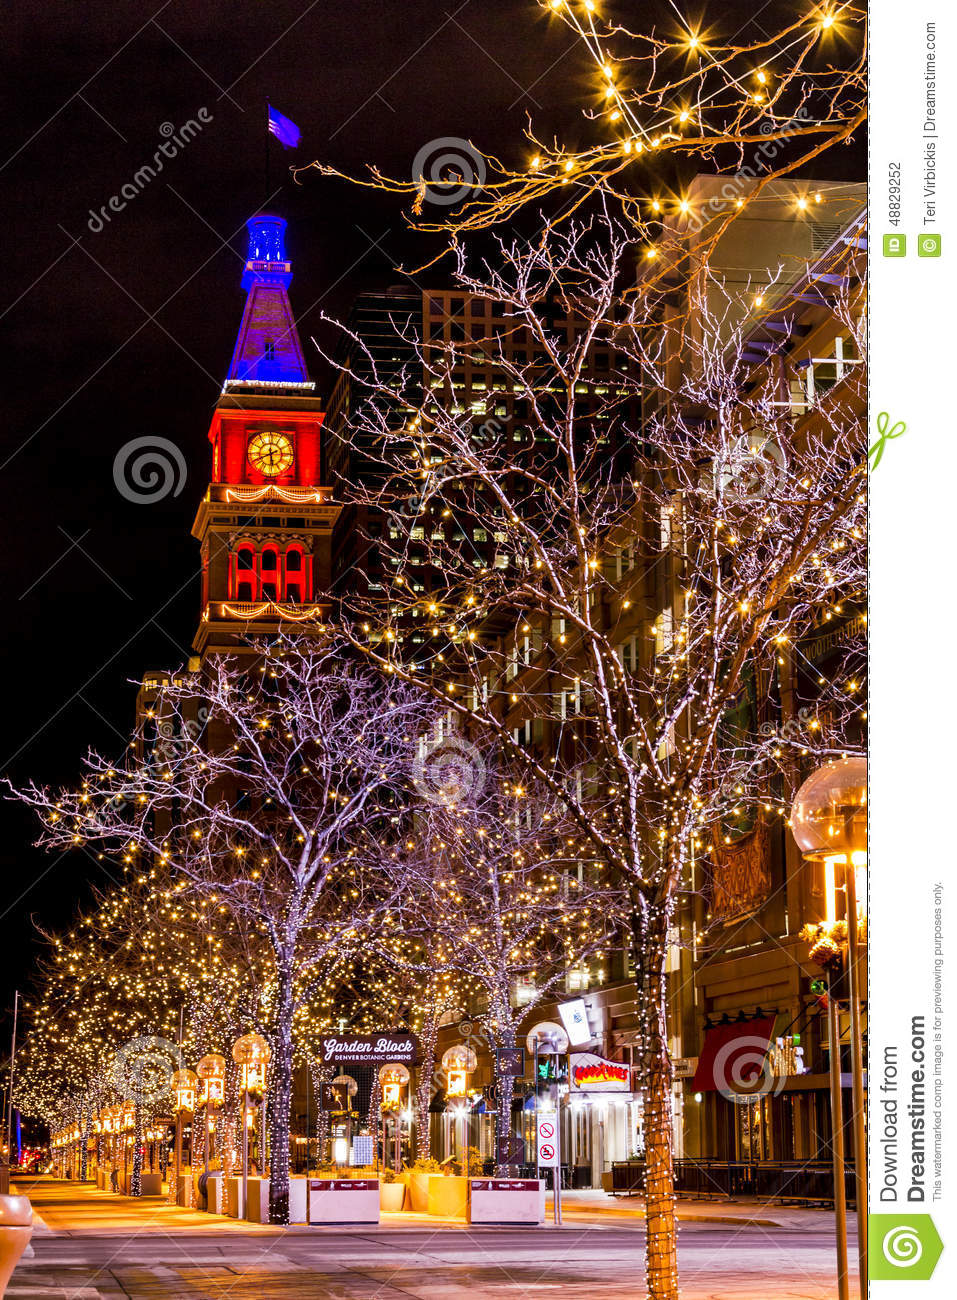 Denver 16th Street Mall In Orange And Blue Editorial Photography ...